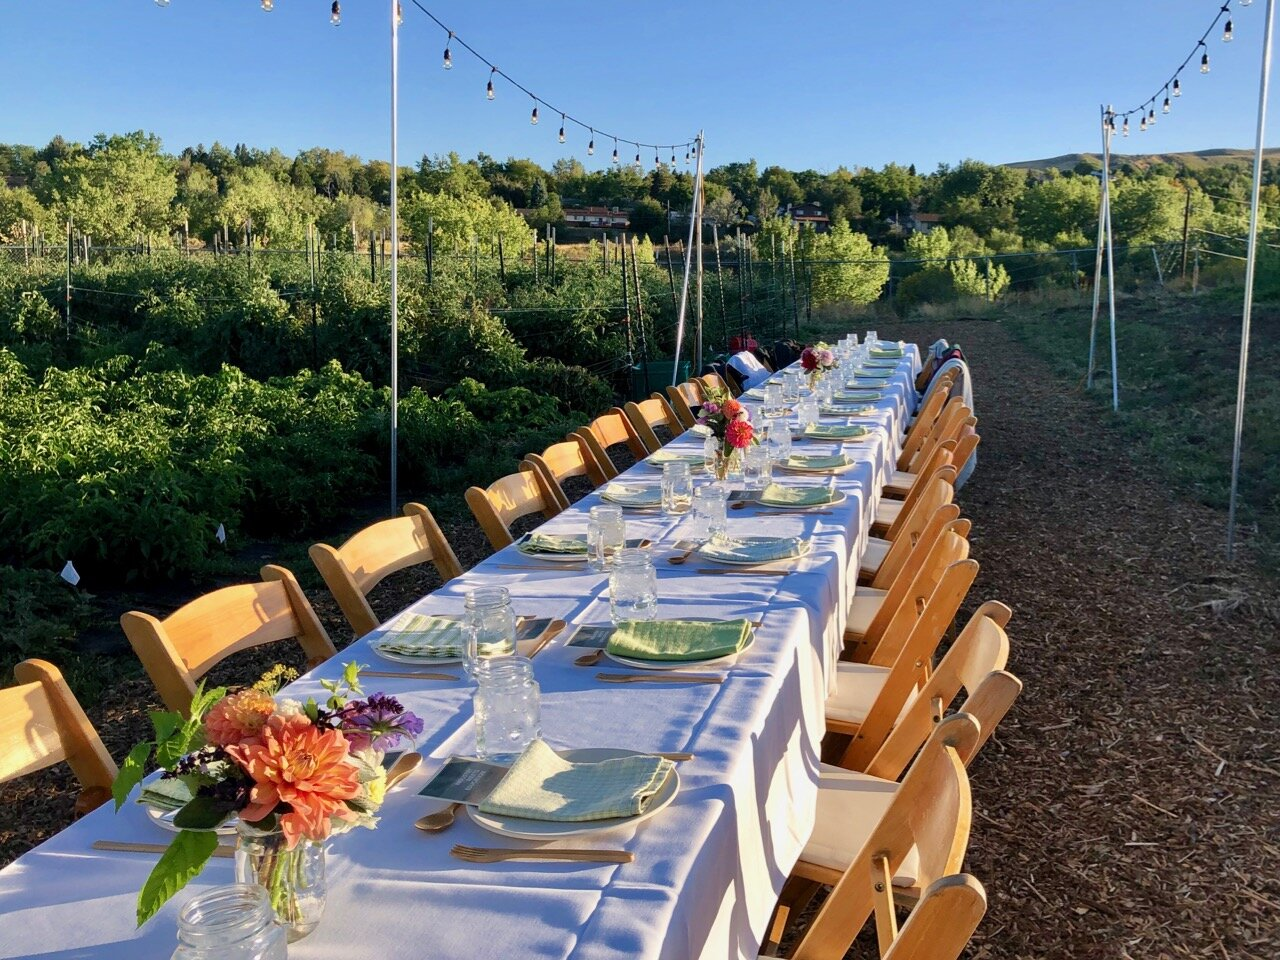 A long table with white tablecloth and wooden chairs in a farm field with lights above